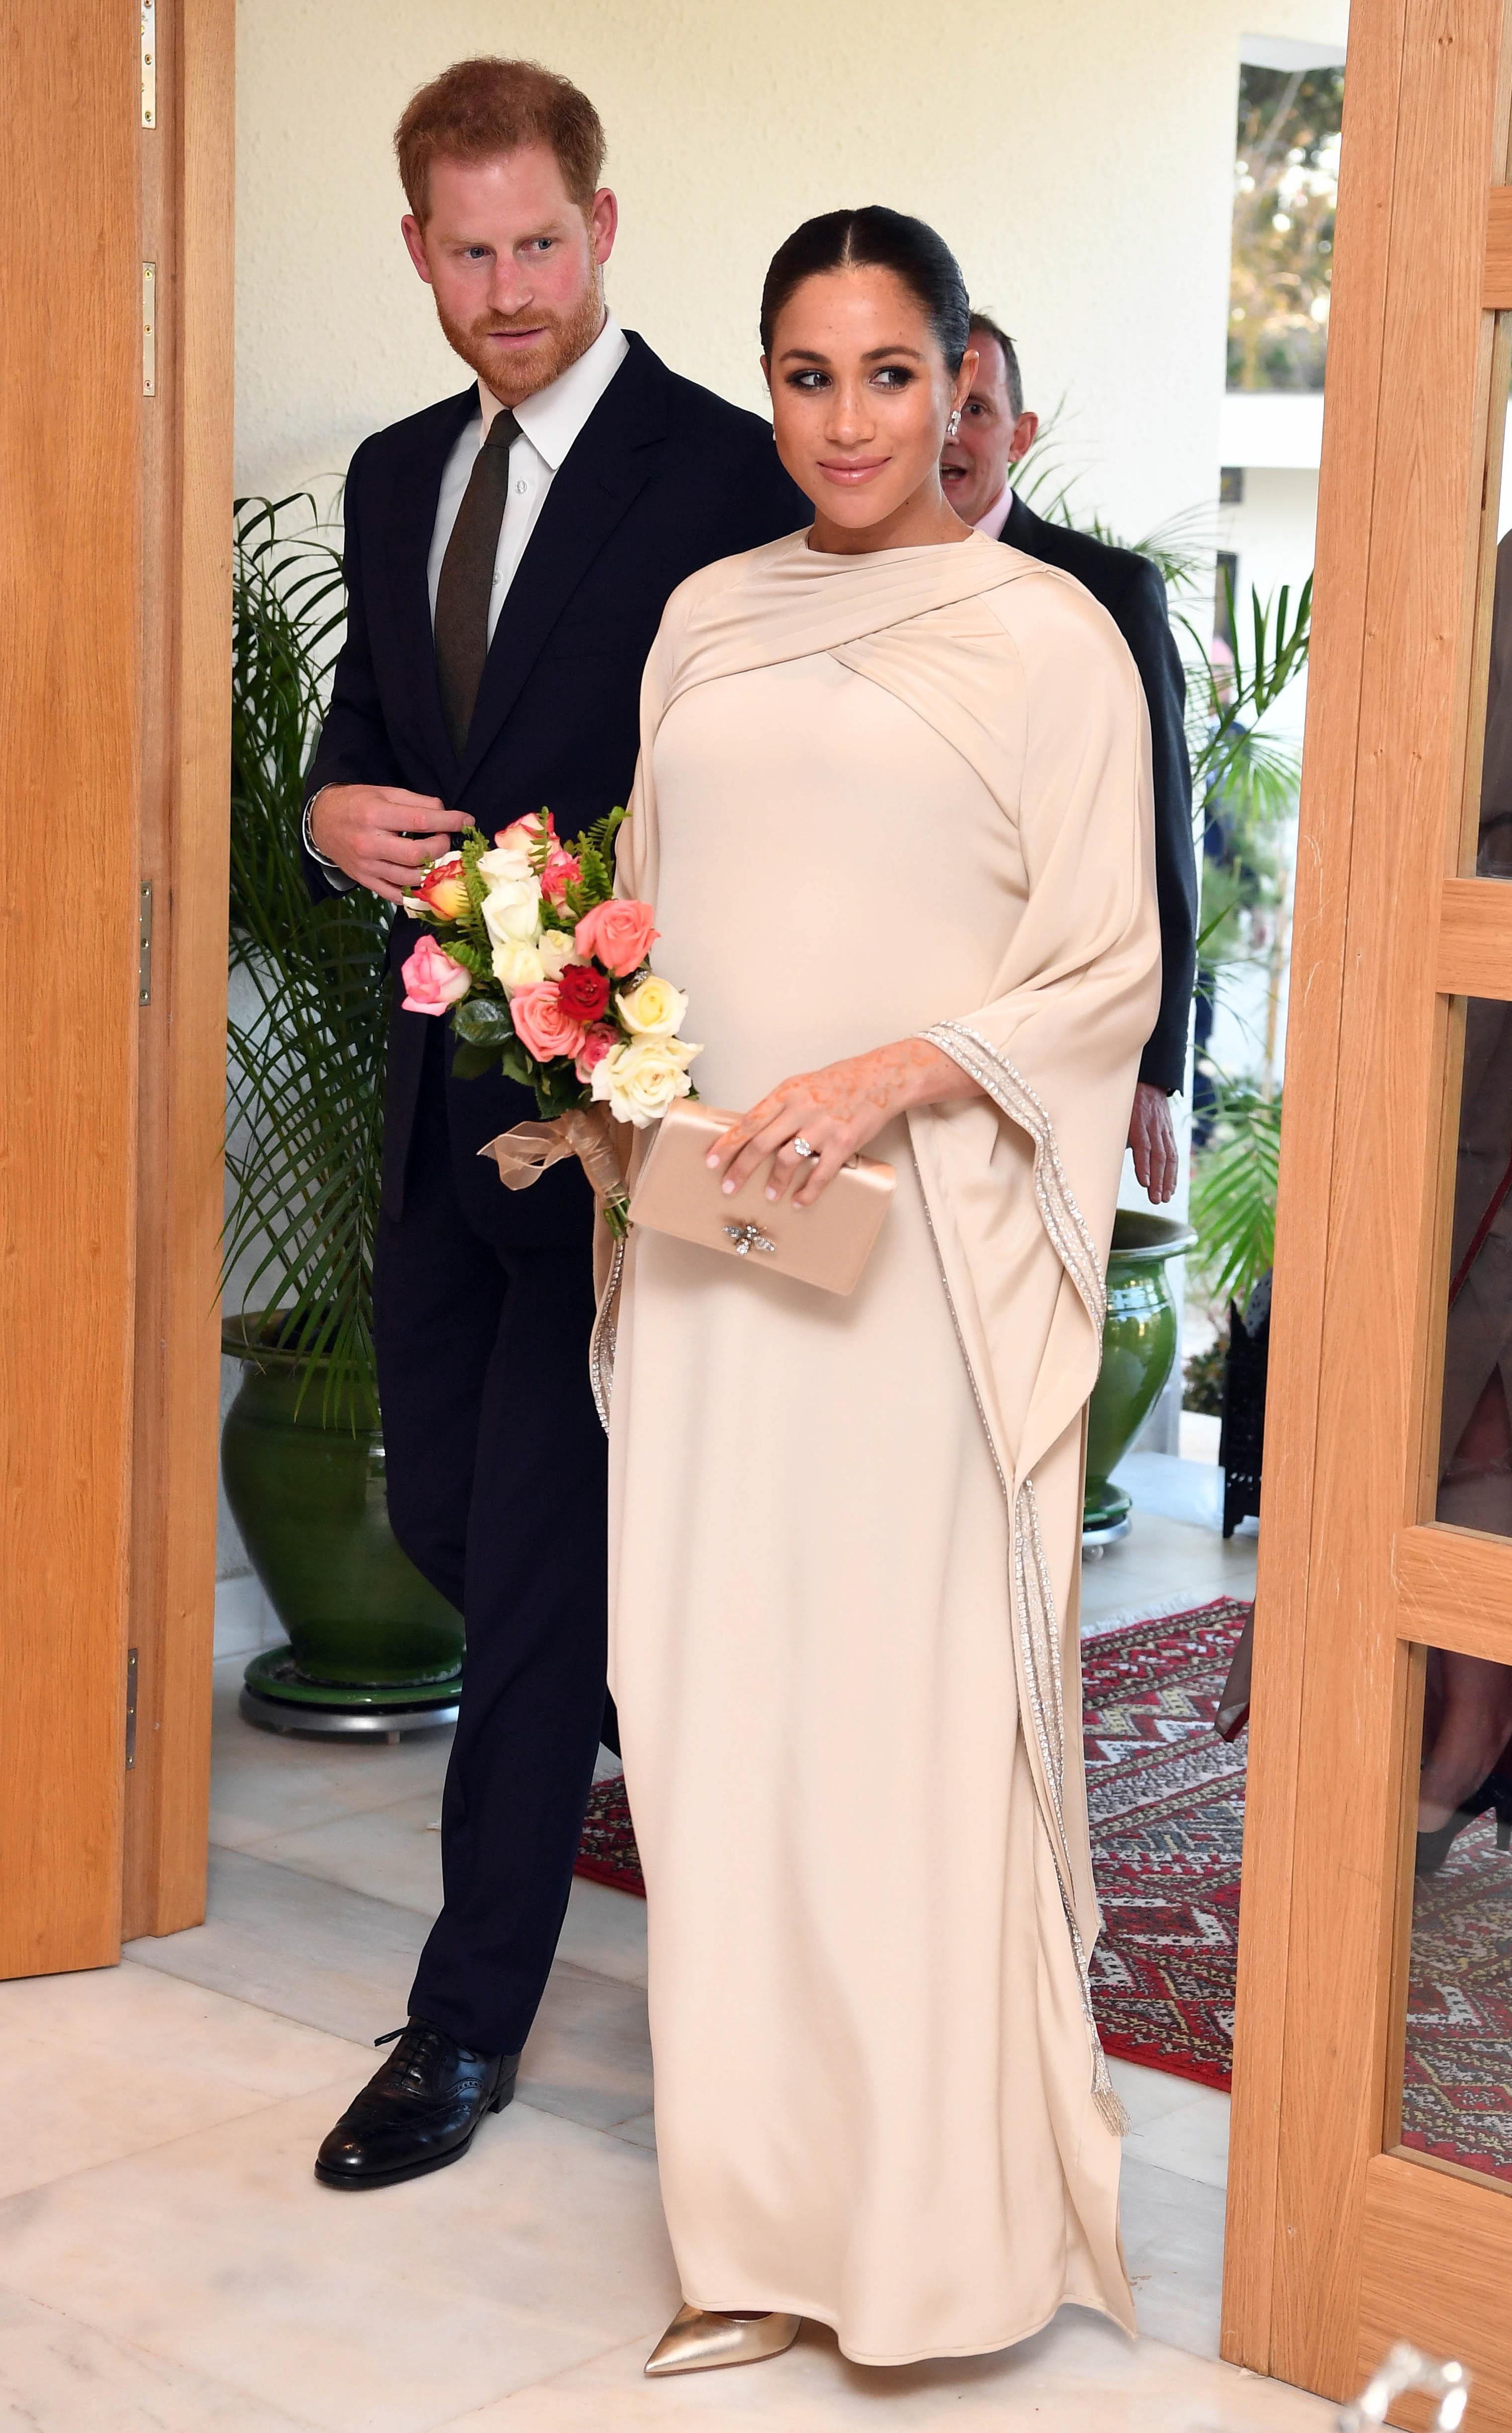 Meghan Markle Haute Couture A Look At Her Christian Dior Dress